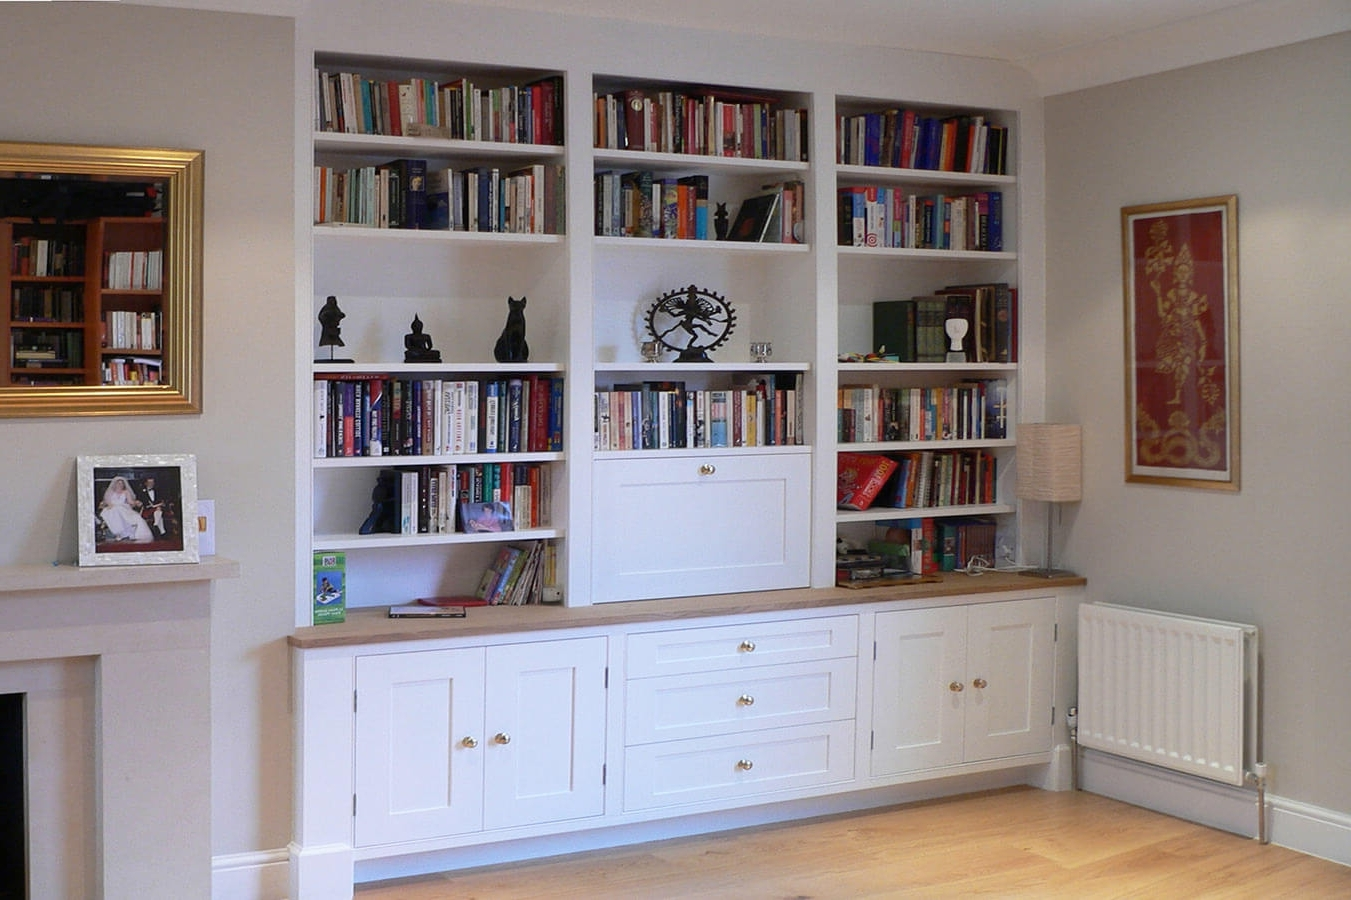 Display, Tv And Media Units In Most Recent Large Bookshelves Units (View 8 of 15)